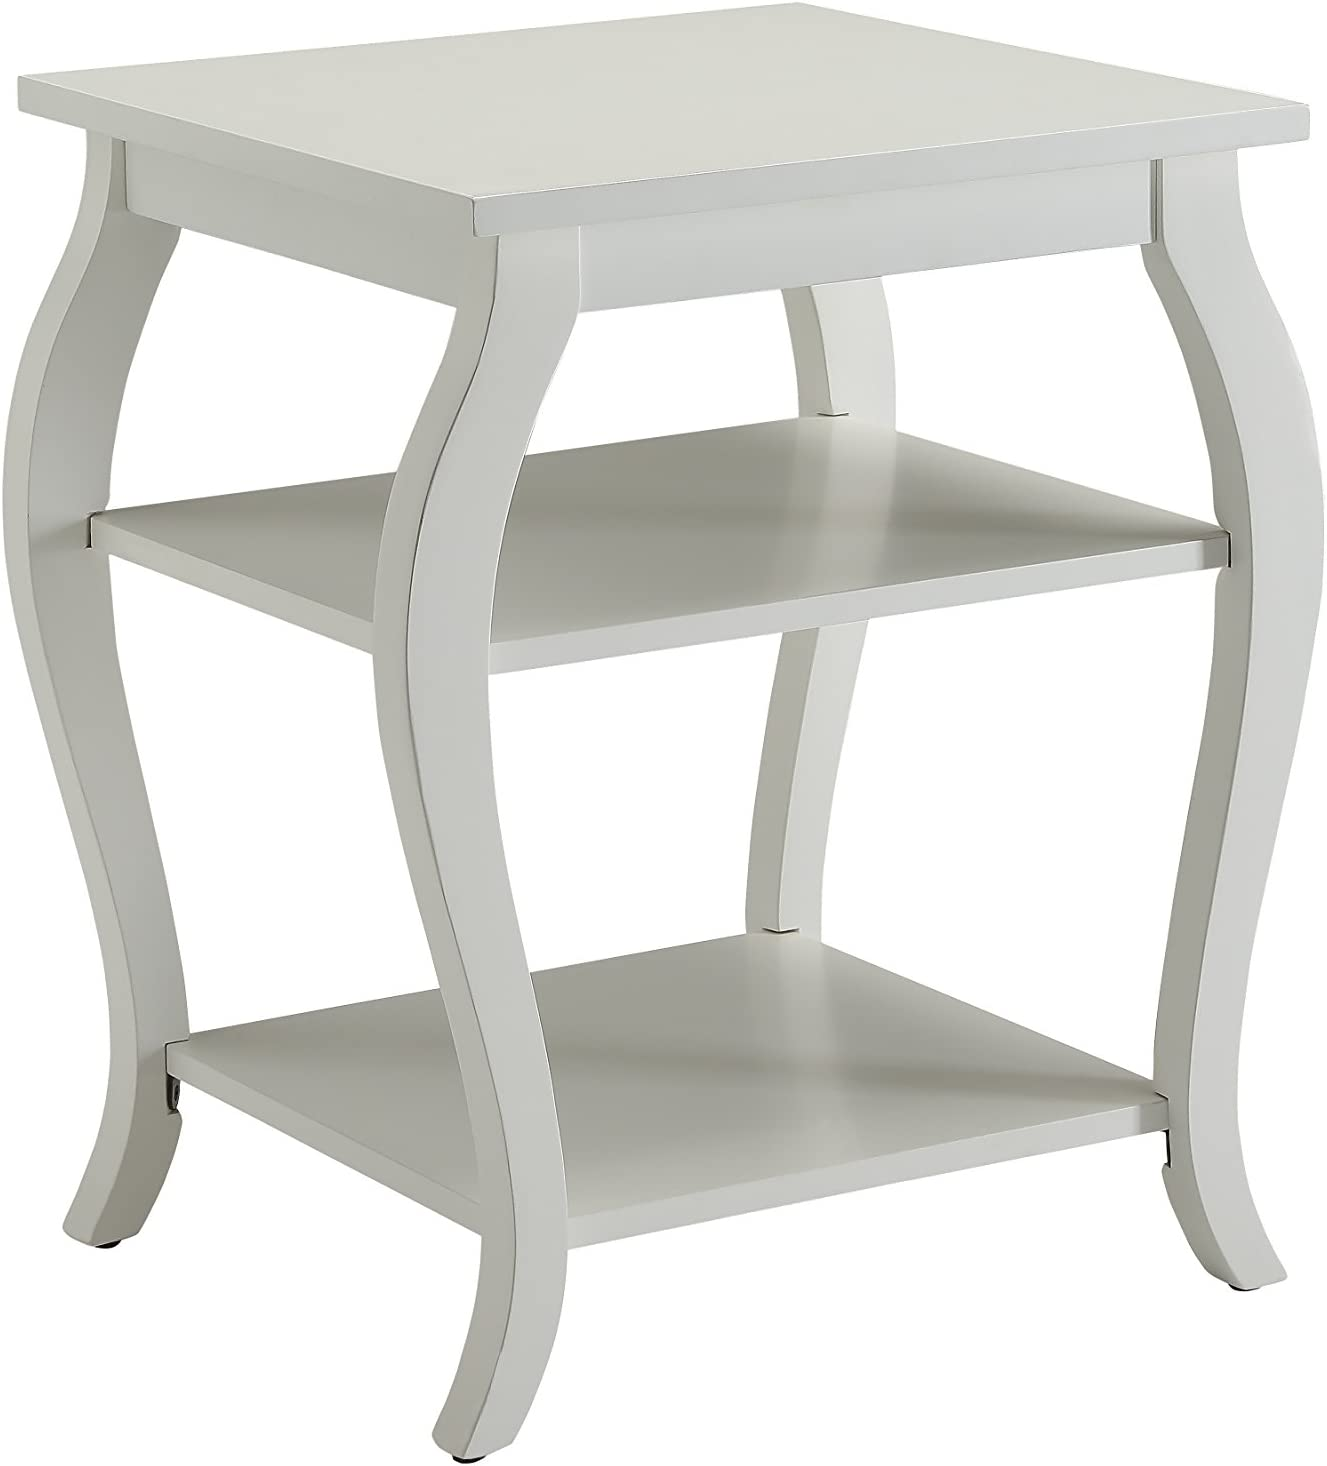 ACME Furniture 82828 Becci End Table, One Size, White